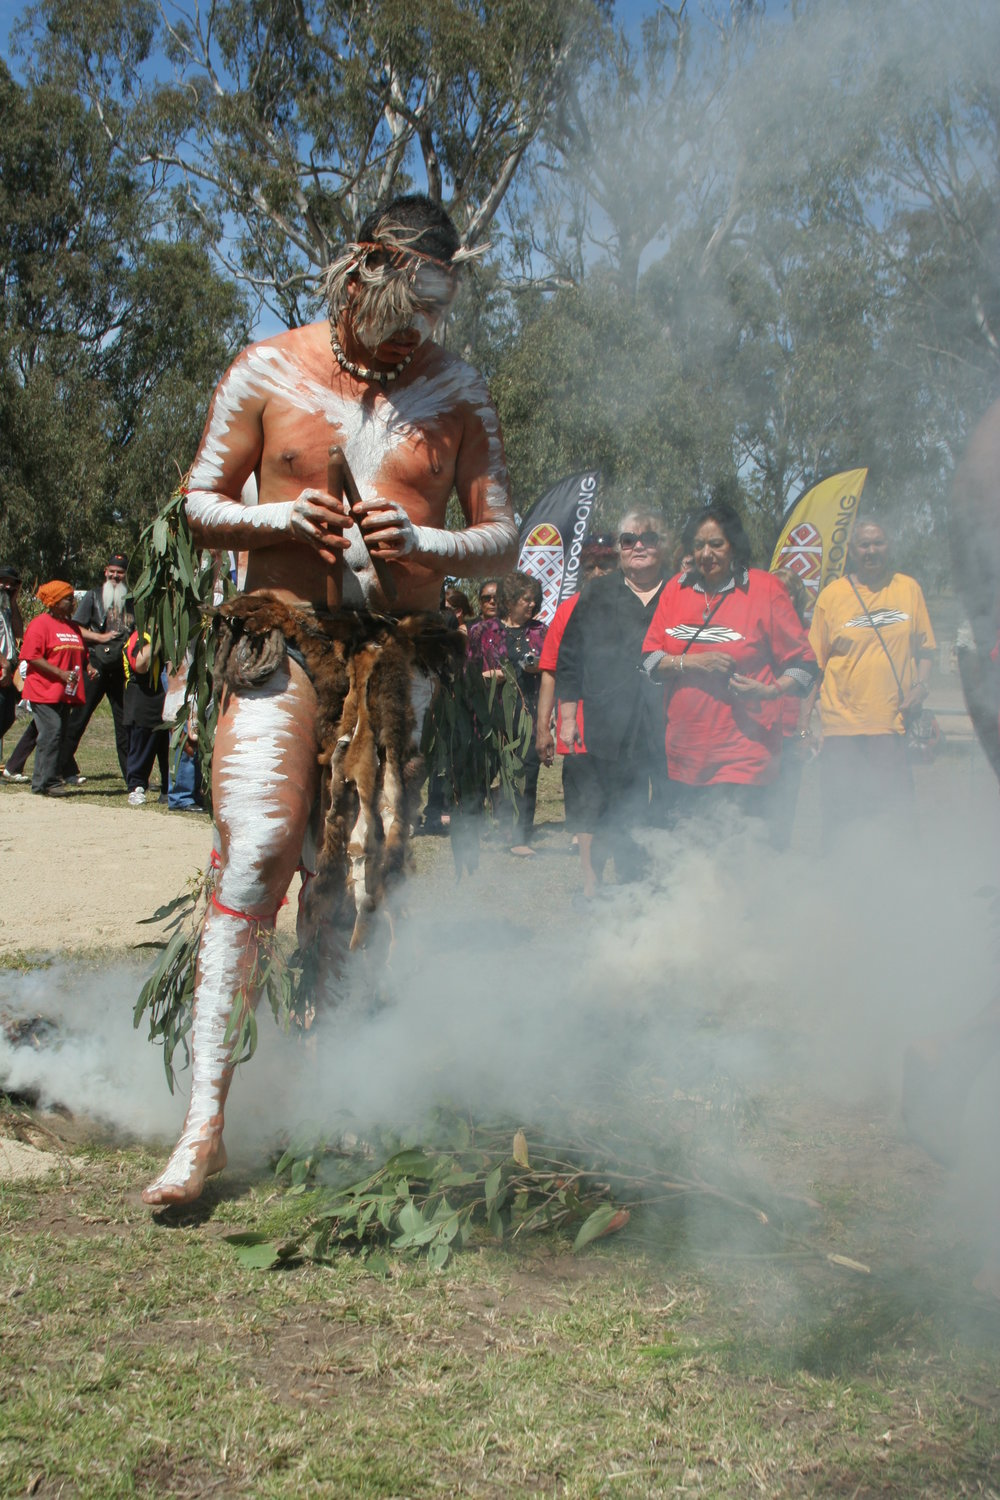 Lowell Hunter, Aunty Rose Garner , Aunty Sheila Baksh, Aunty Shirley Foster take part in smoking ceremony.JPG